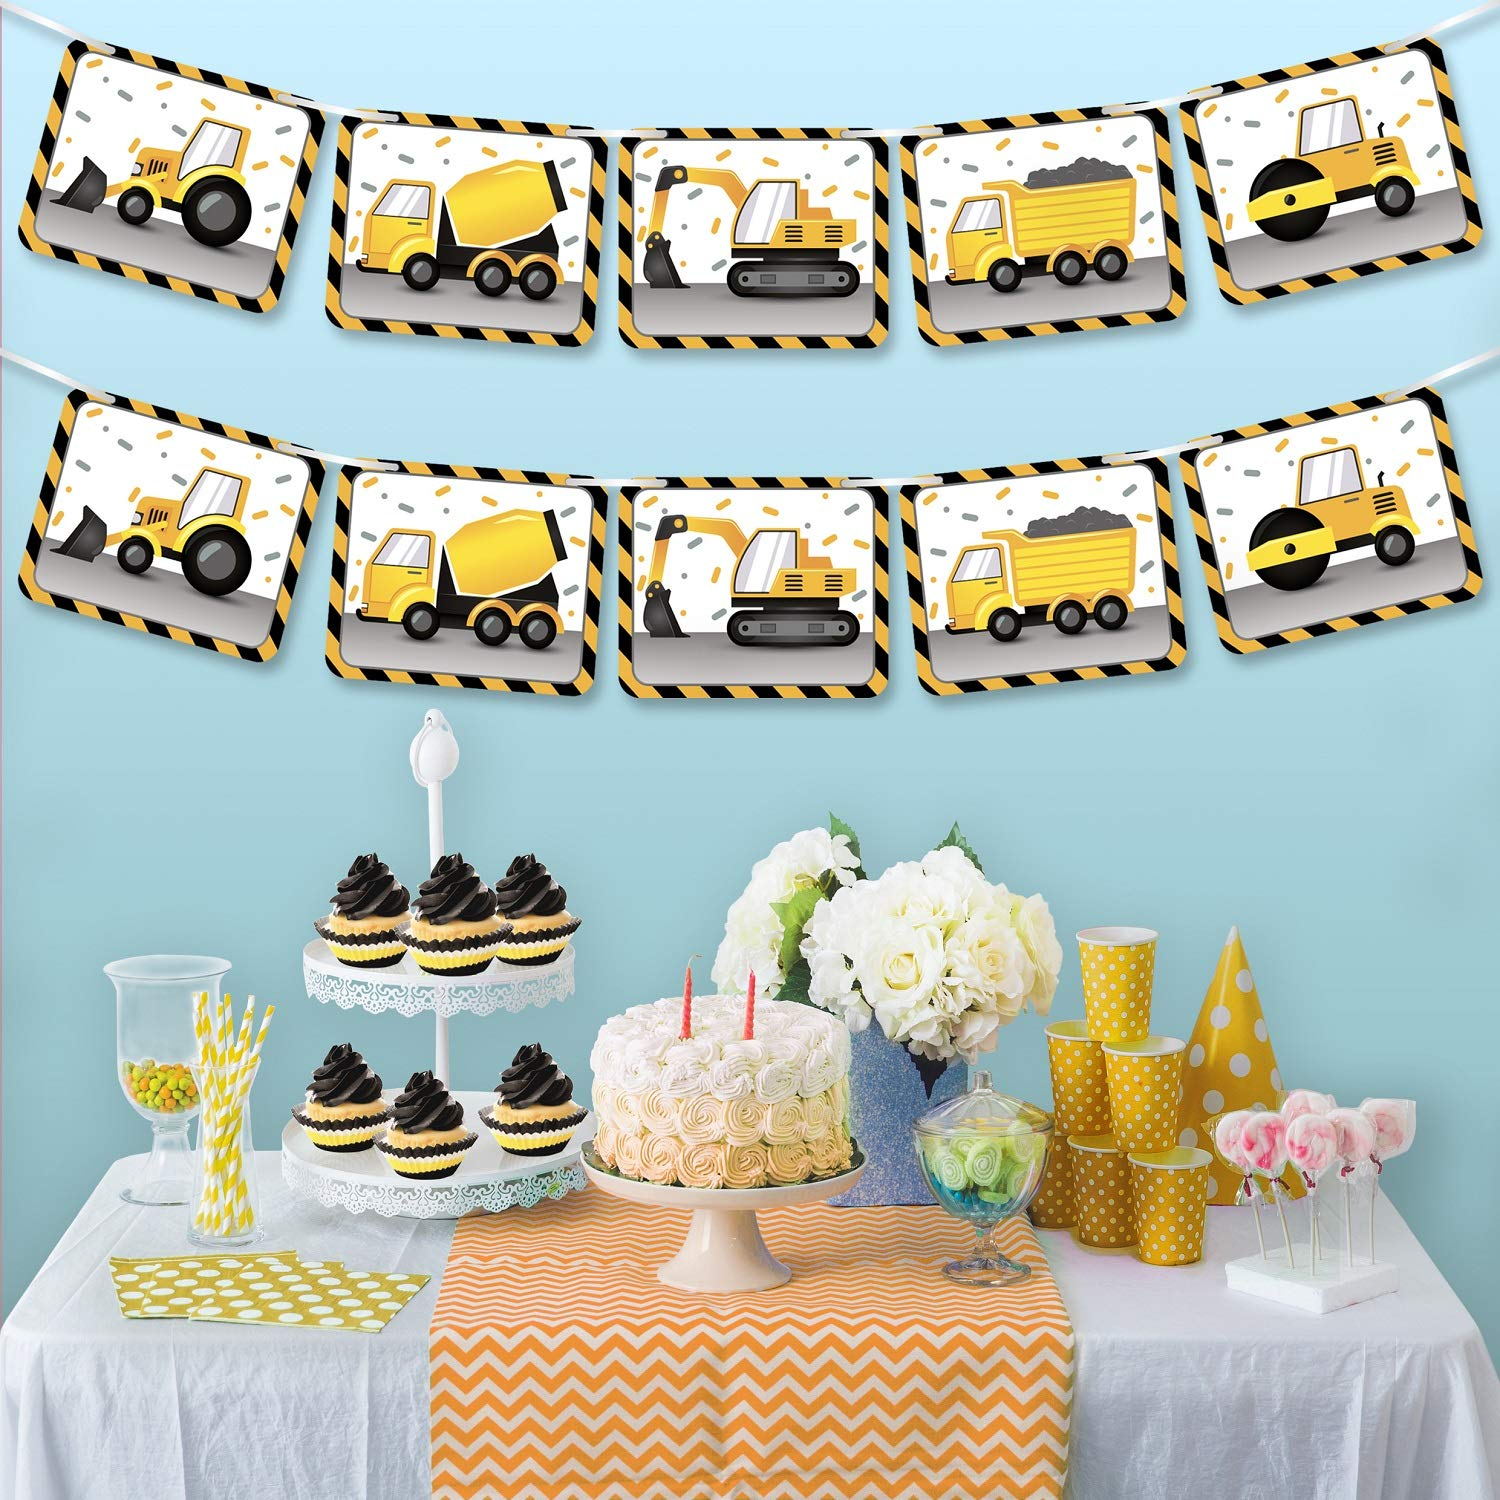 Nautical Themed Fiesta Flags Pennant Banner 10 Feet Long 9 Mini Flags Made of Polyester Cloth Birthday Party Decorations Bunting For Boys Girls Desert Cactus